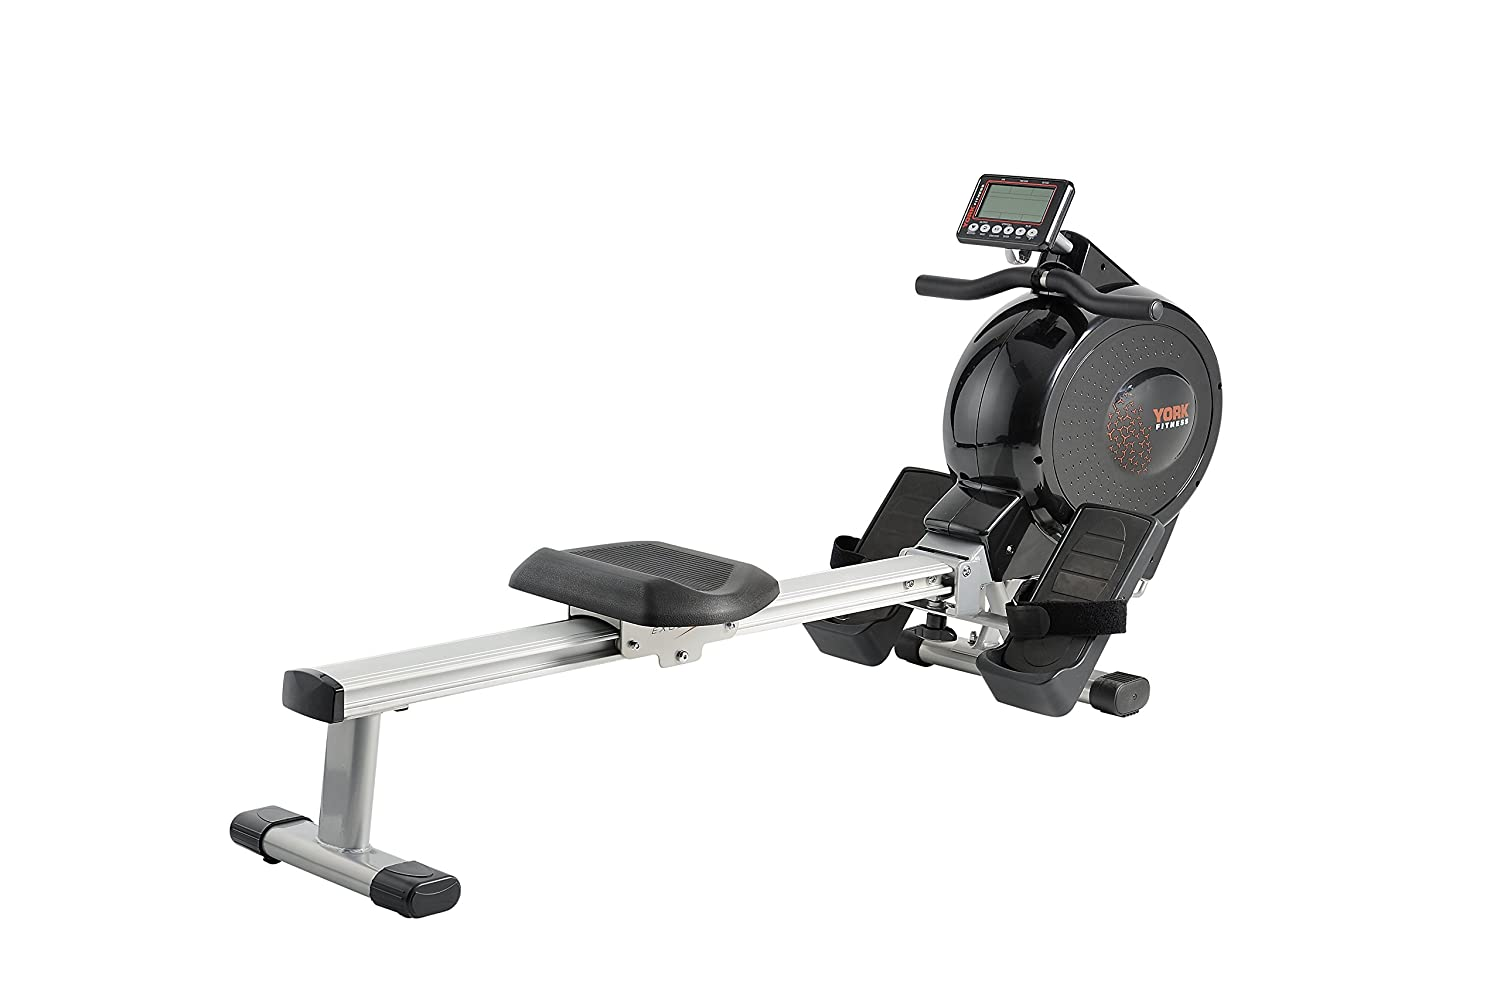 York Excel 310 Rowing Machine review